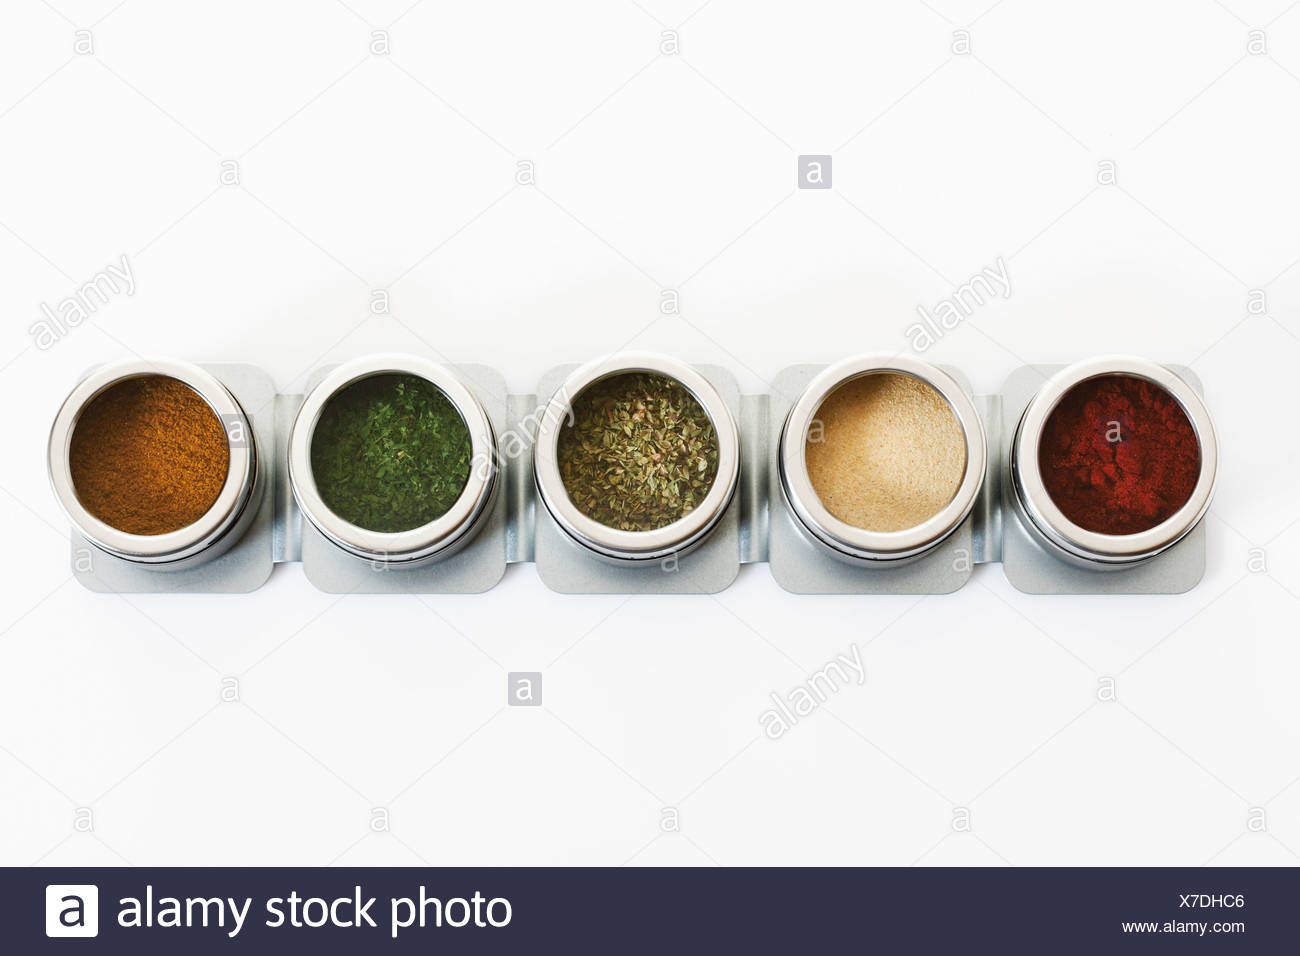 Variety of herbs and spices in box on white background - Stock Image